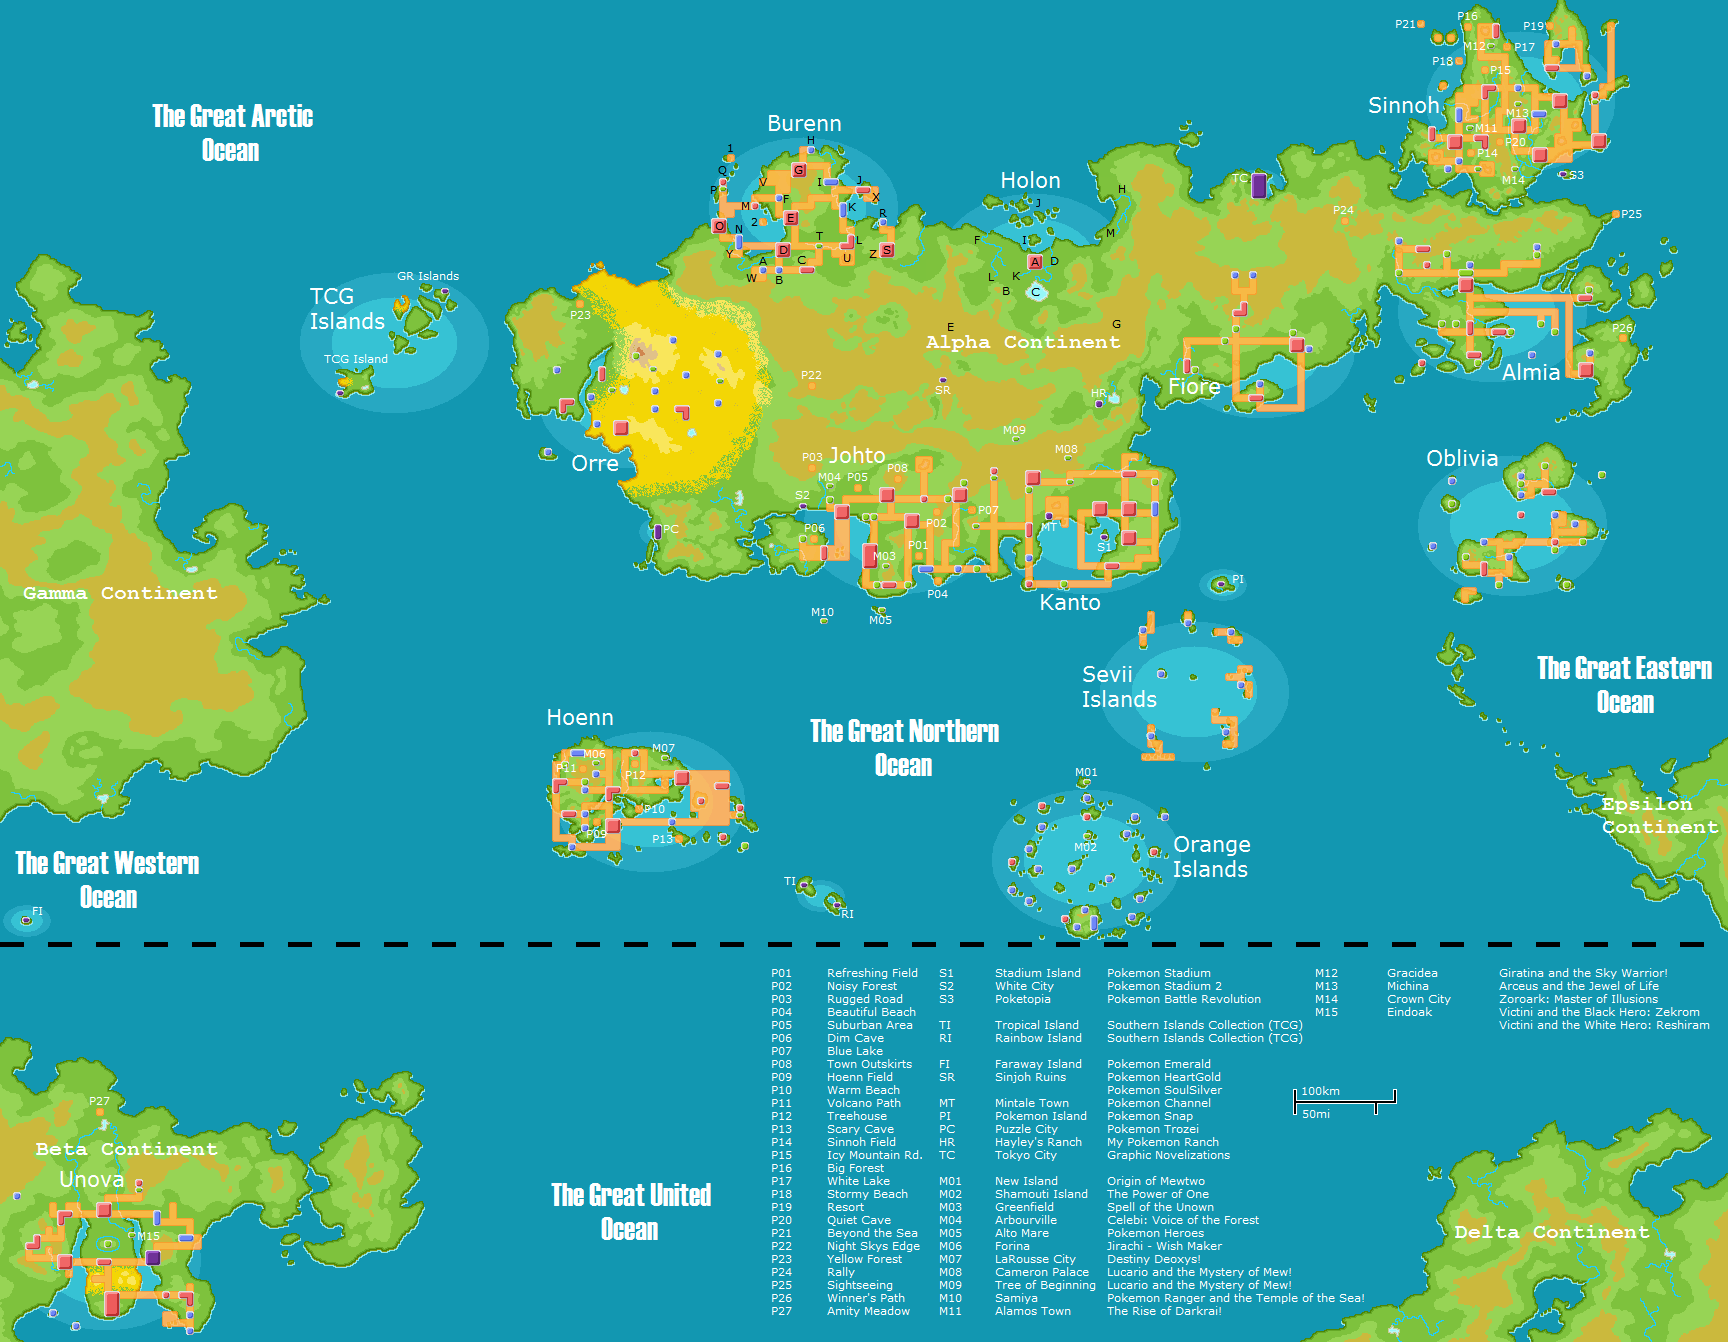 My Pokemon World Map v6.0 by JamisonHartley on DeviantArt